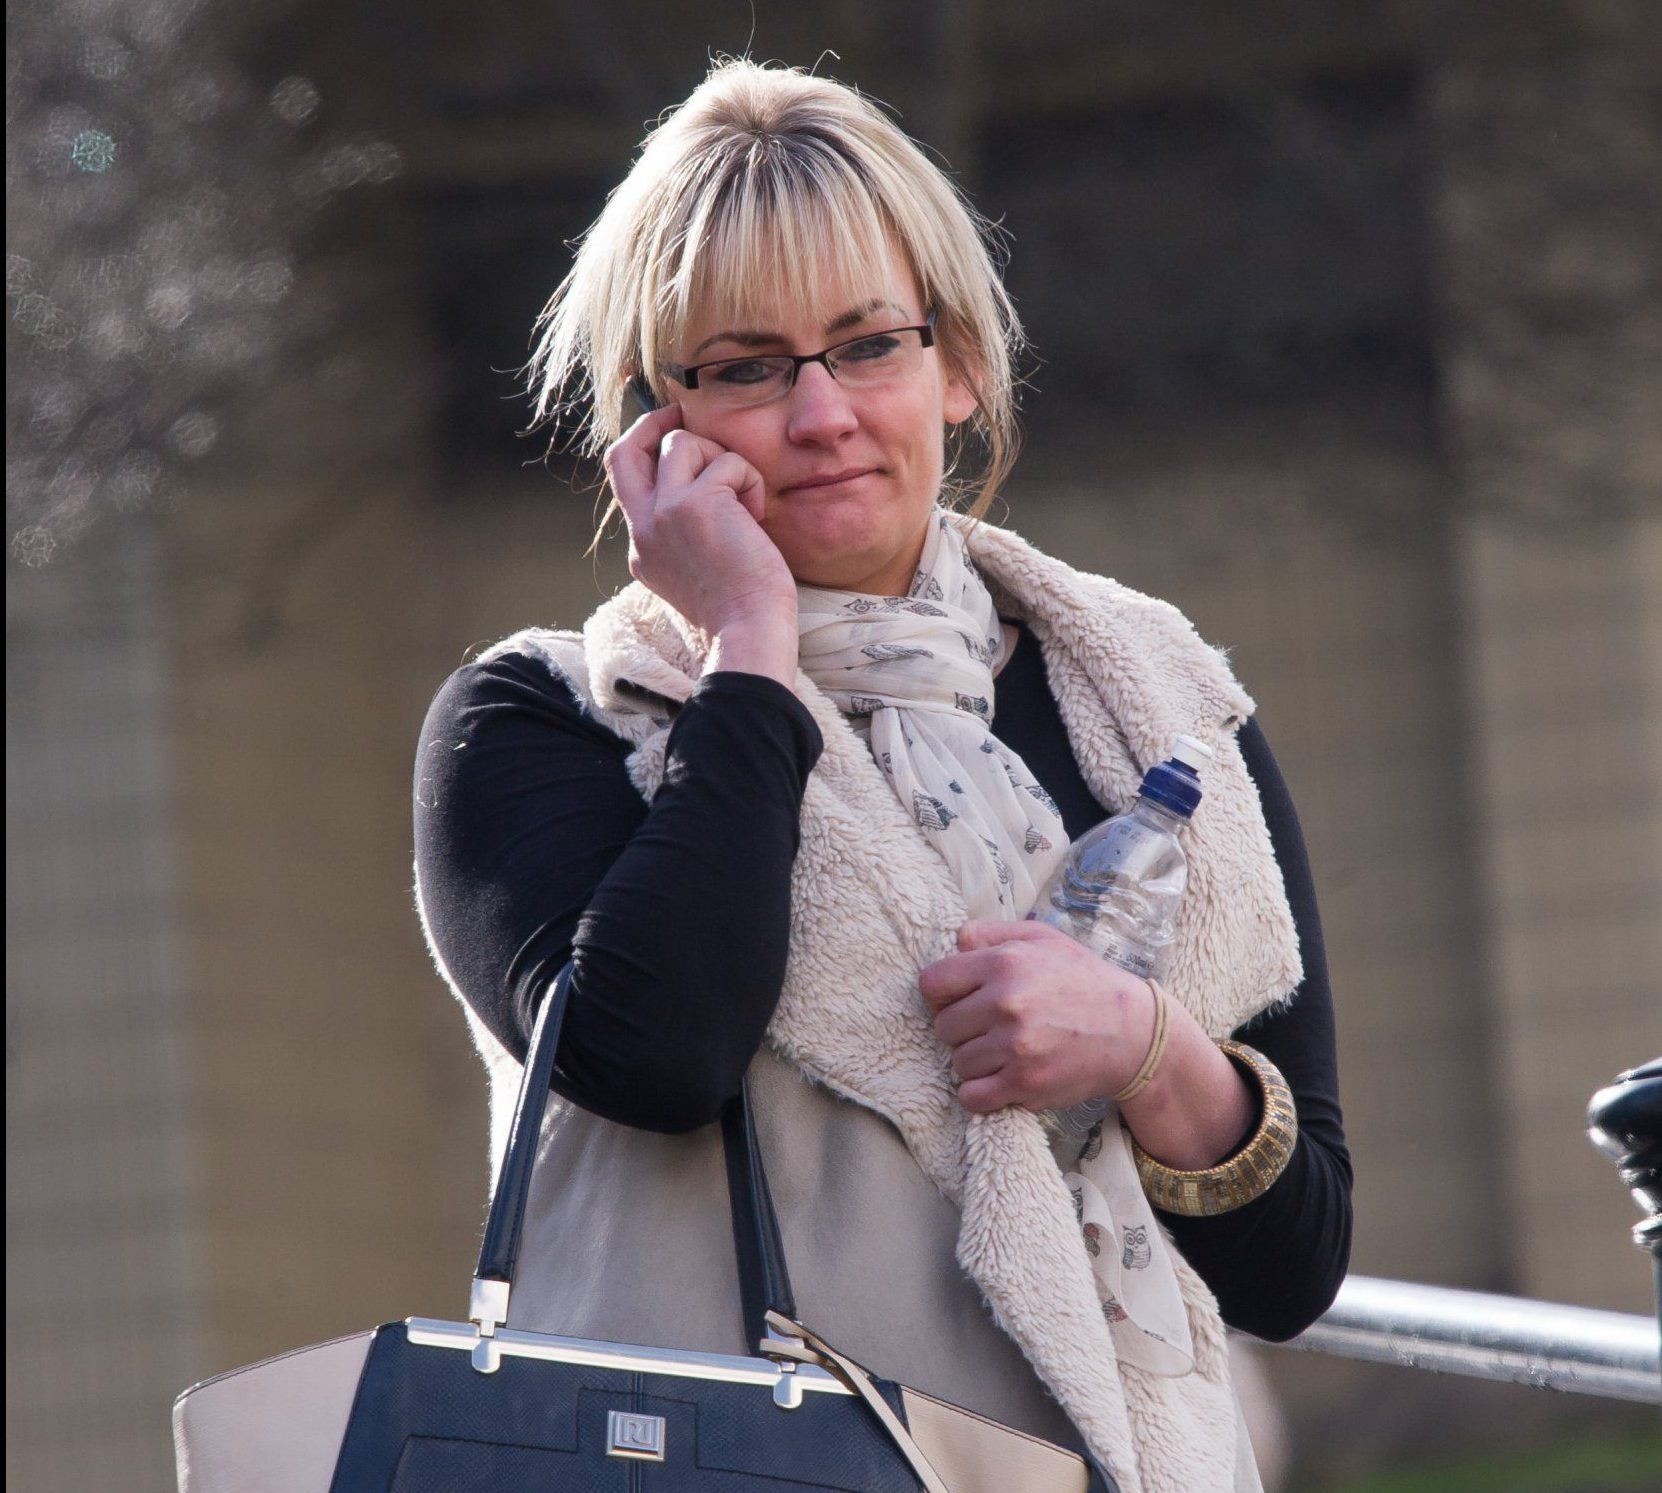 Dawn Walker leaving Burnley Crown Court. Walker repeatedly escaped jail despite carrying 11 drunken attacks on police officers and who has now been convicted of stabbing her boyfriend in the back during another wine-fuelled meltdown Disclaimer: While Cavendish Press (Manchester) Ltd uses its' best endeavours to establish the copyright and authenticity of all pictures supplied, it accepts no liability for any damage, loss or legal action caused by the use of images supplied. The publication of images is solely at your discretion. For terms and conditions see http://www.cavendish-press.co.uk/pages/terms-and-conditions.aspx